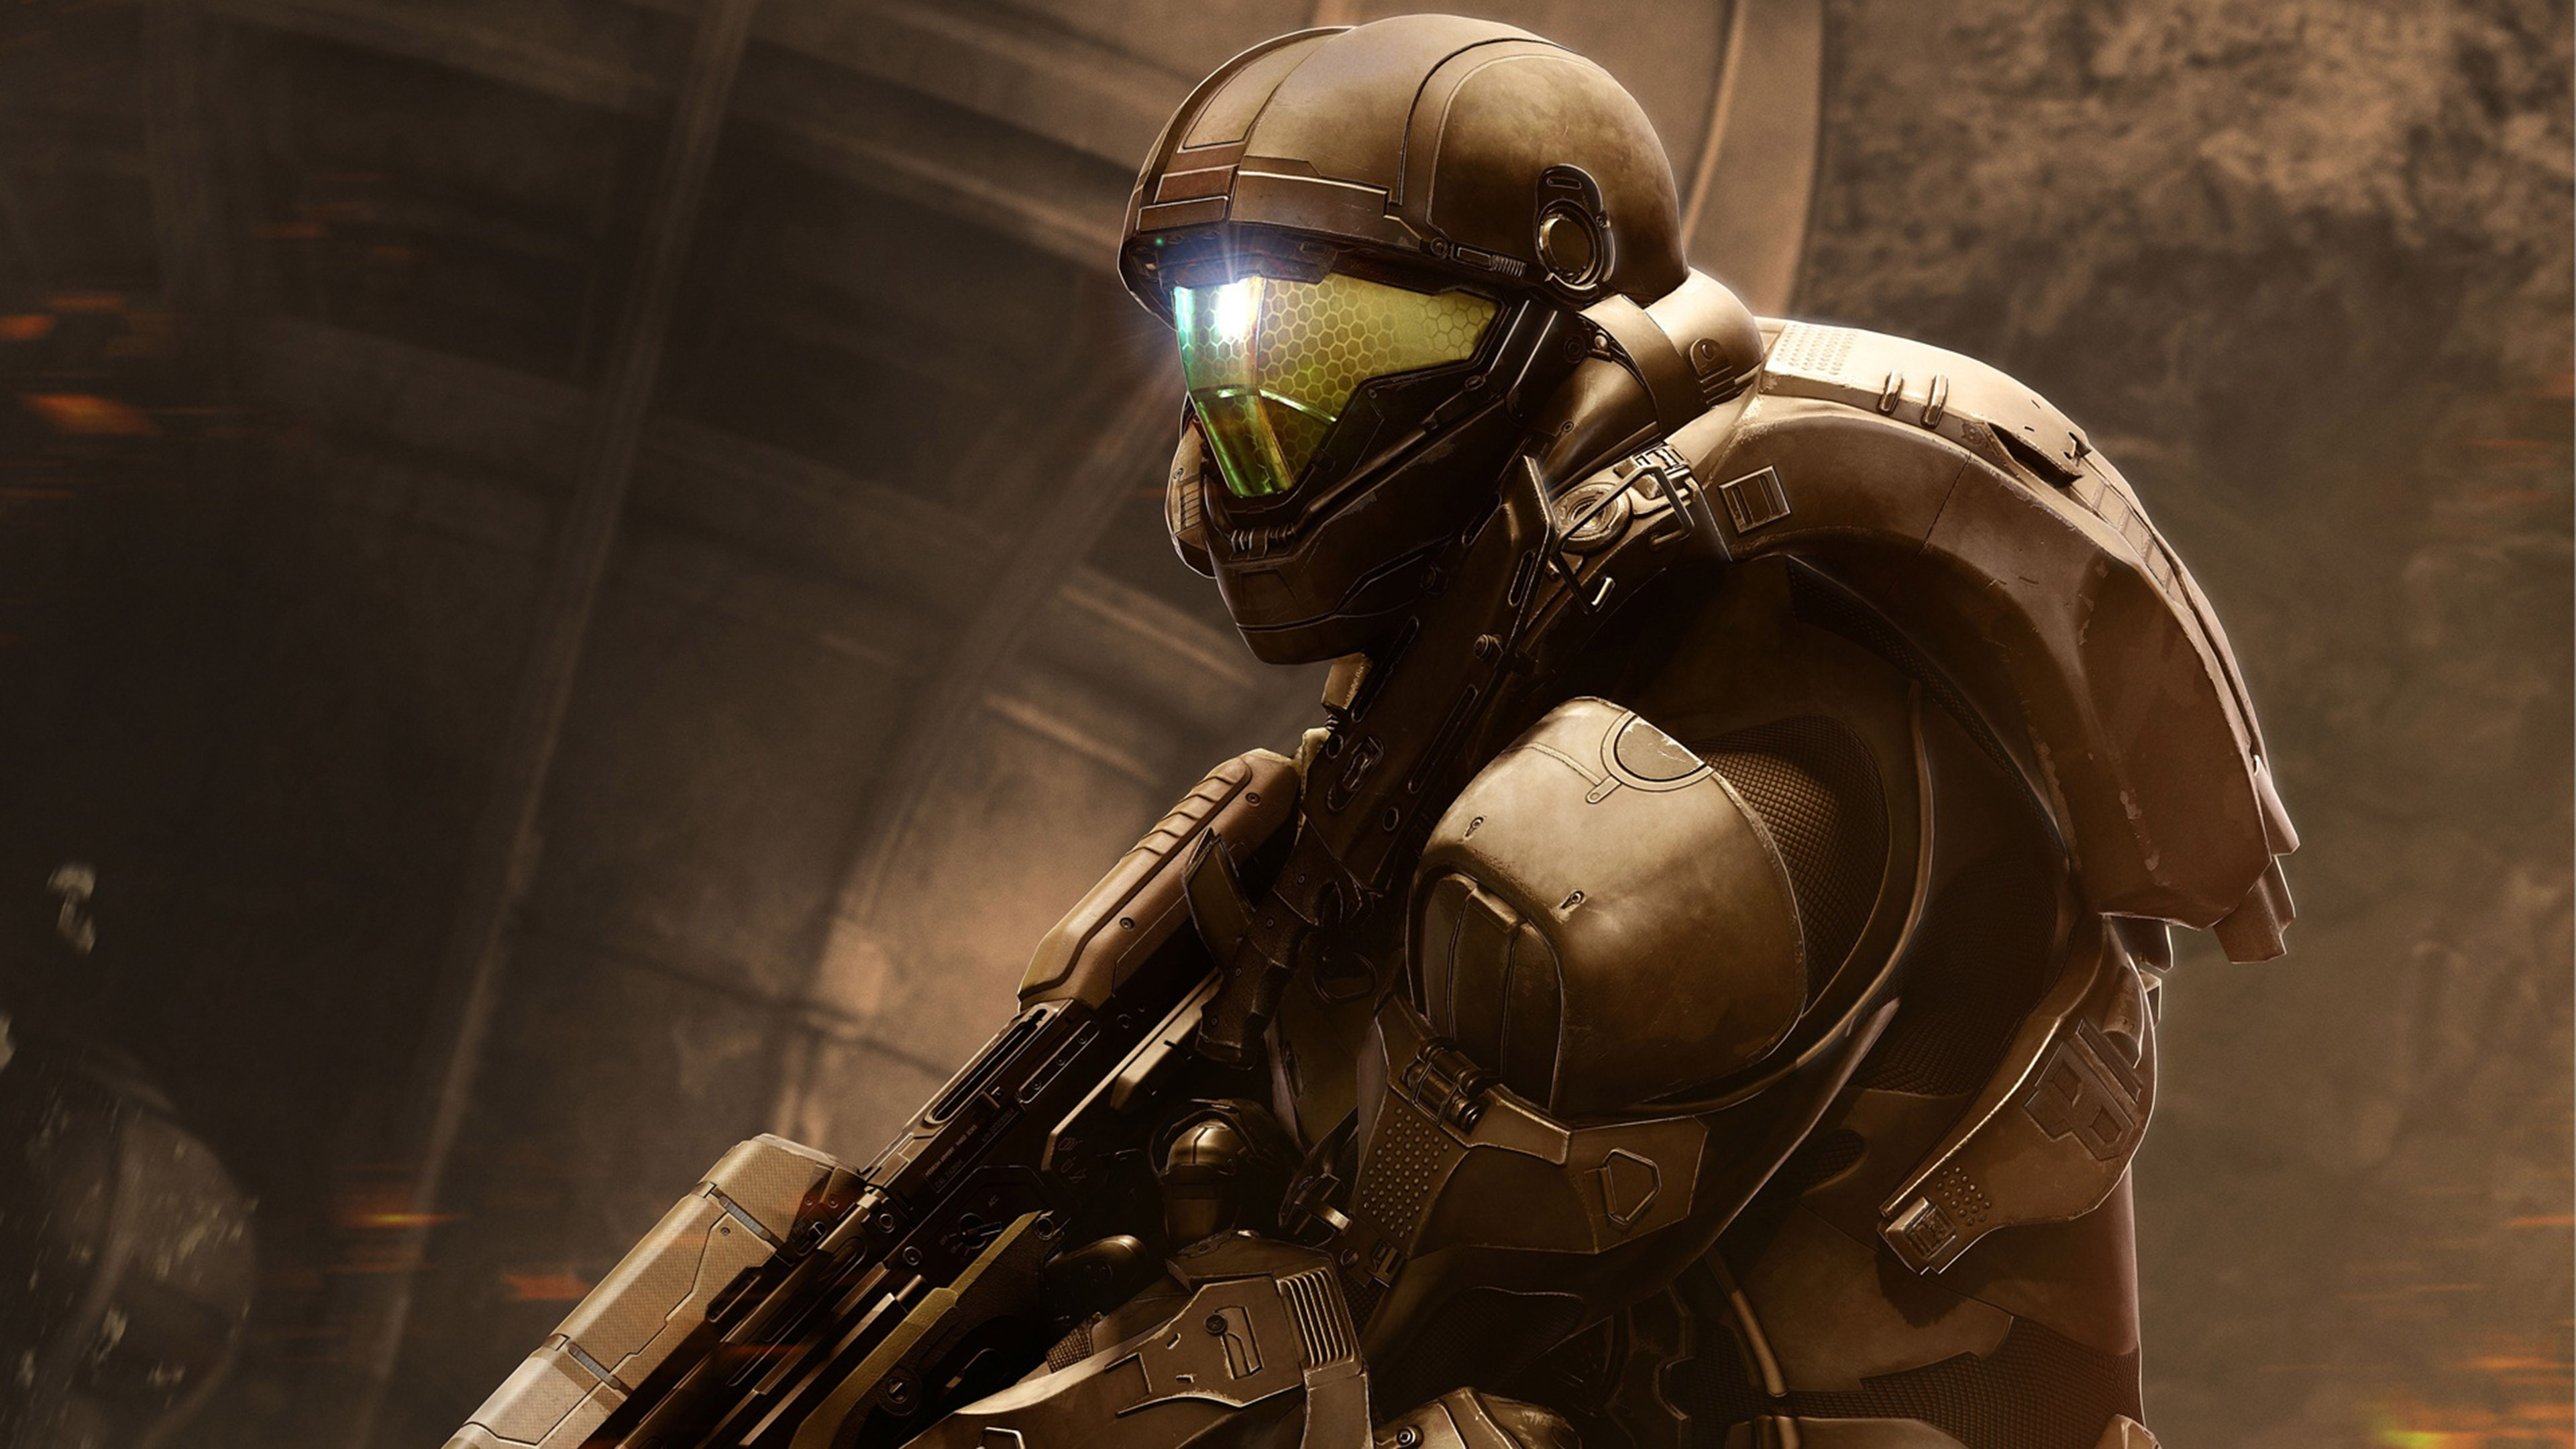 HD Background Halo 5 Guardians Game Buck Shooter Robot Wallpaper 3840x2160